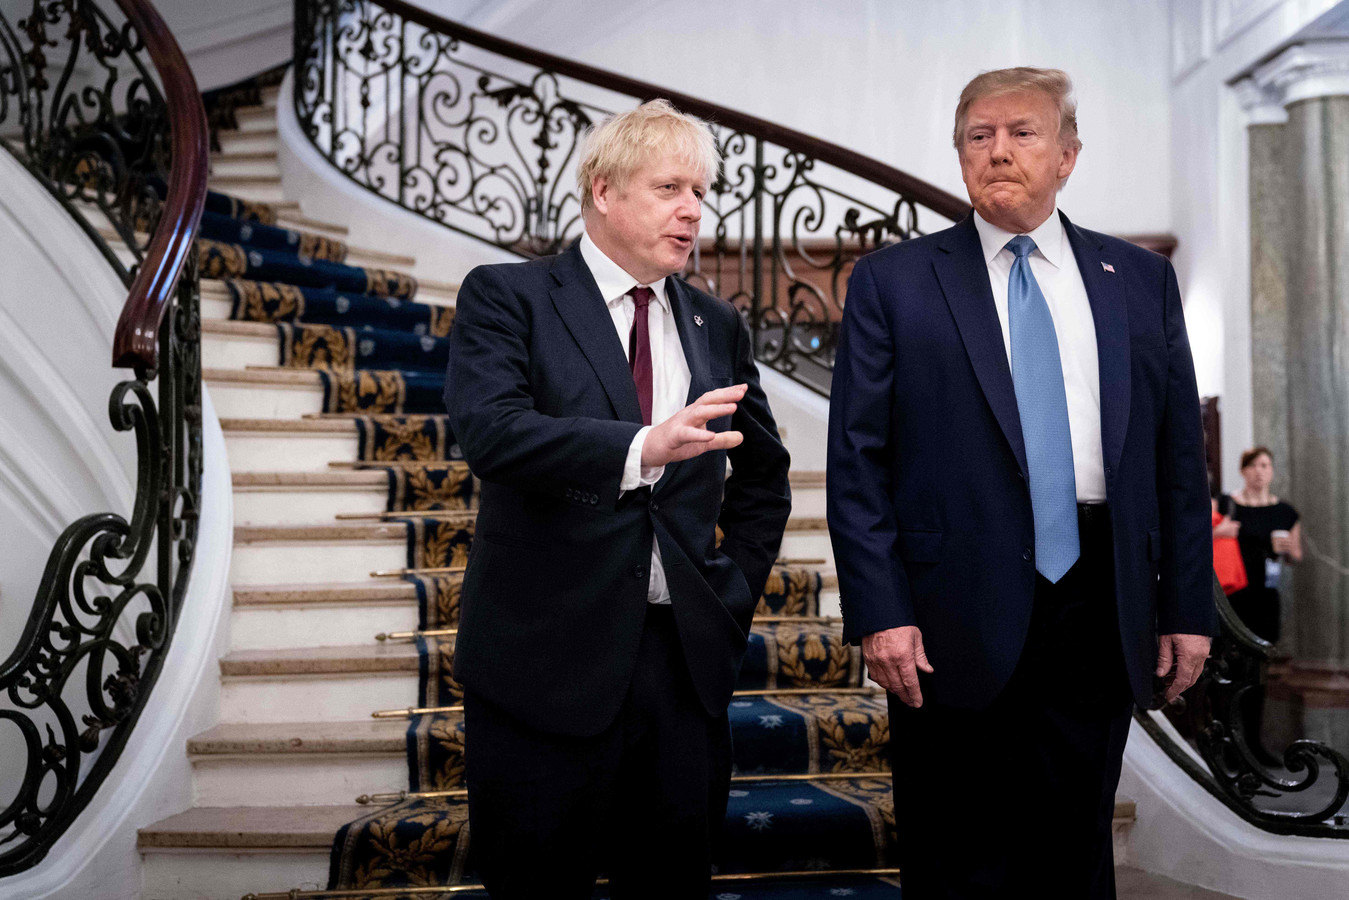 De Britse premier Boris Johnson (links) met de Amerikaanse president Donald Trump op de G7-top in het Franse Biarritz in augustus.